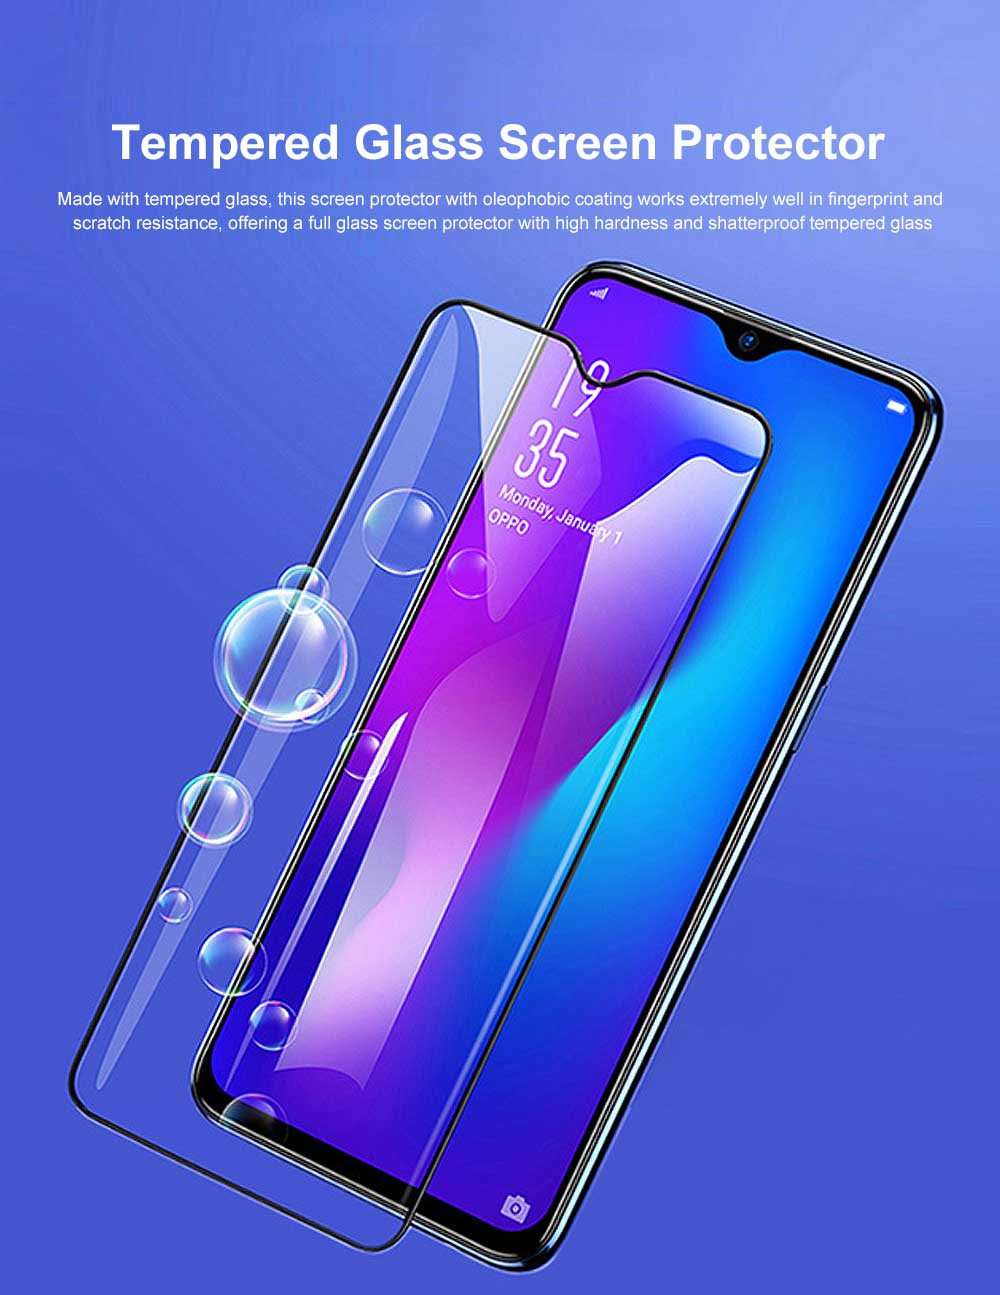 Tempered Glass Screen Protector Full Screen Coverage, Anti-Fingerprint Bubble Free Protector for iPhone X or XS, iPhone XR, iPhone XS Max, iPhone7 or 8, iPhone 7 or 8 plus, iPhone 6 or 6S, iPhone 6S plus 0